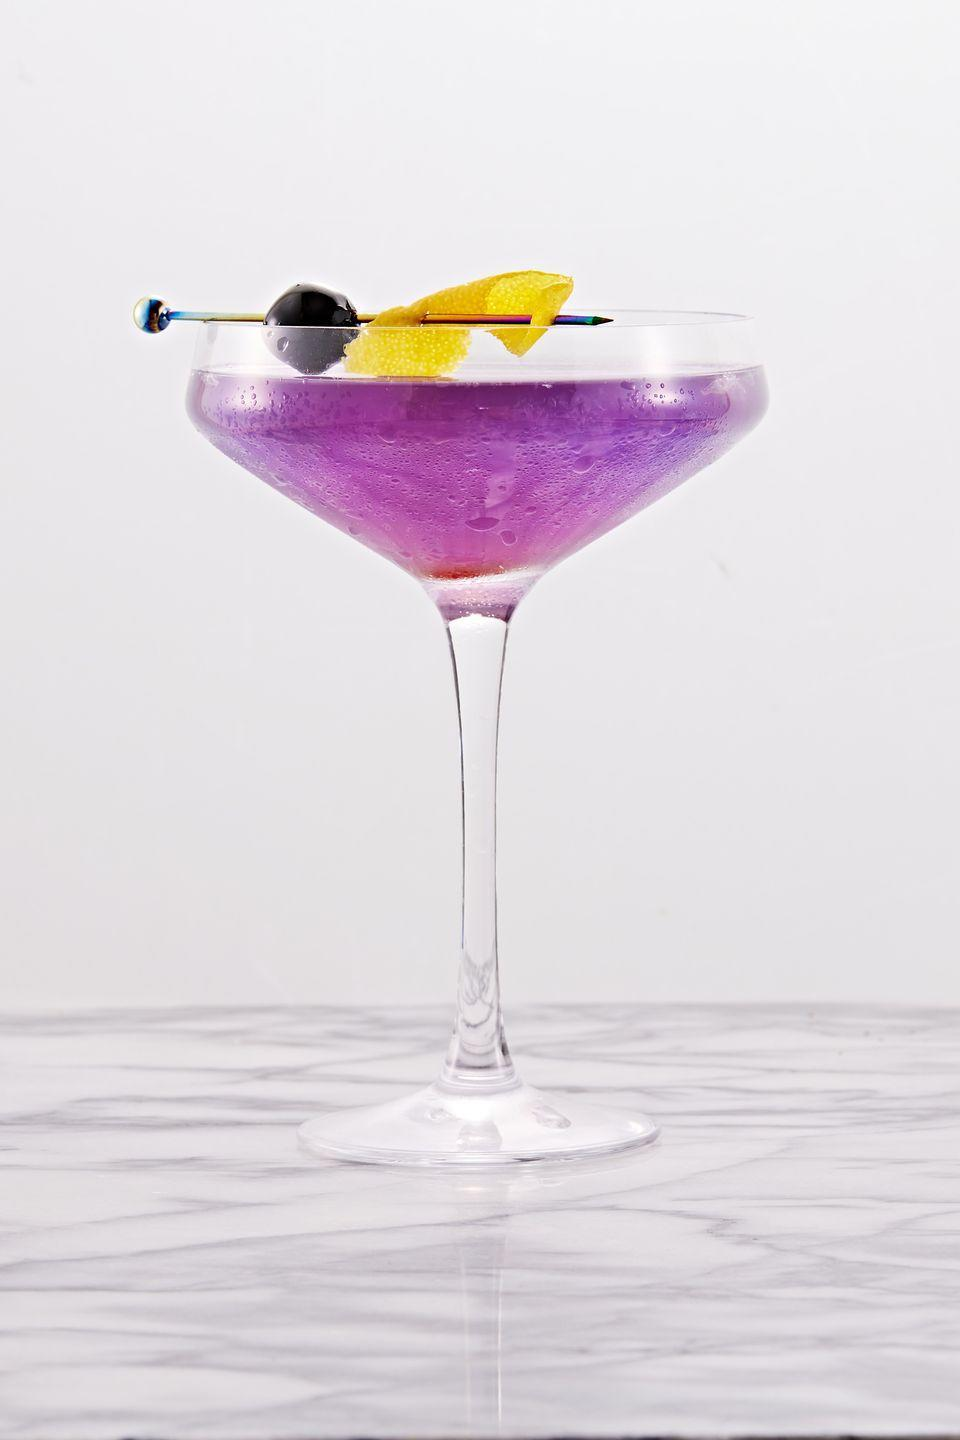 """<p>Perfectly purple.</p><p>Get the recipe from <a href=""""https://www.delish.com/cooking/recipe-ideas/a36940314/aviation-cocktail-recipe/"""" rel=""""nofollow noopener"""" target=""""_blank"""" data-ylk=""""slk:Delish"""" class=""""link rapid-noclick-resp"""">Delish</a>.</p>"""